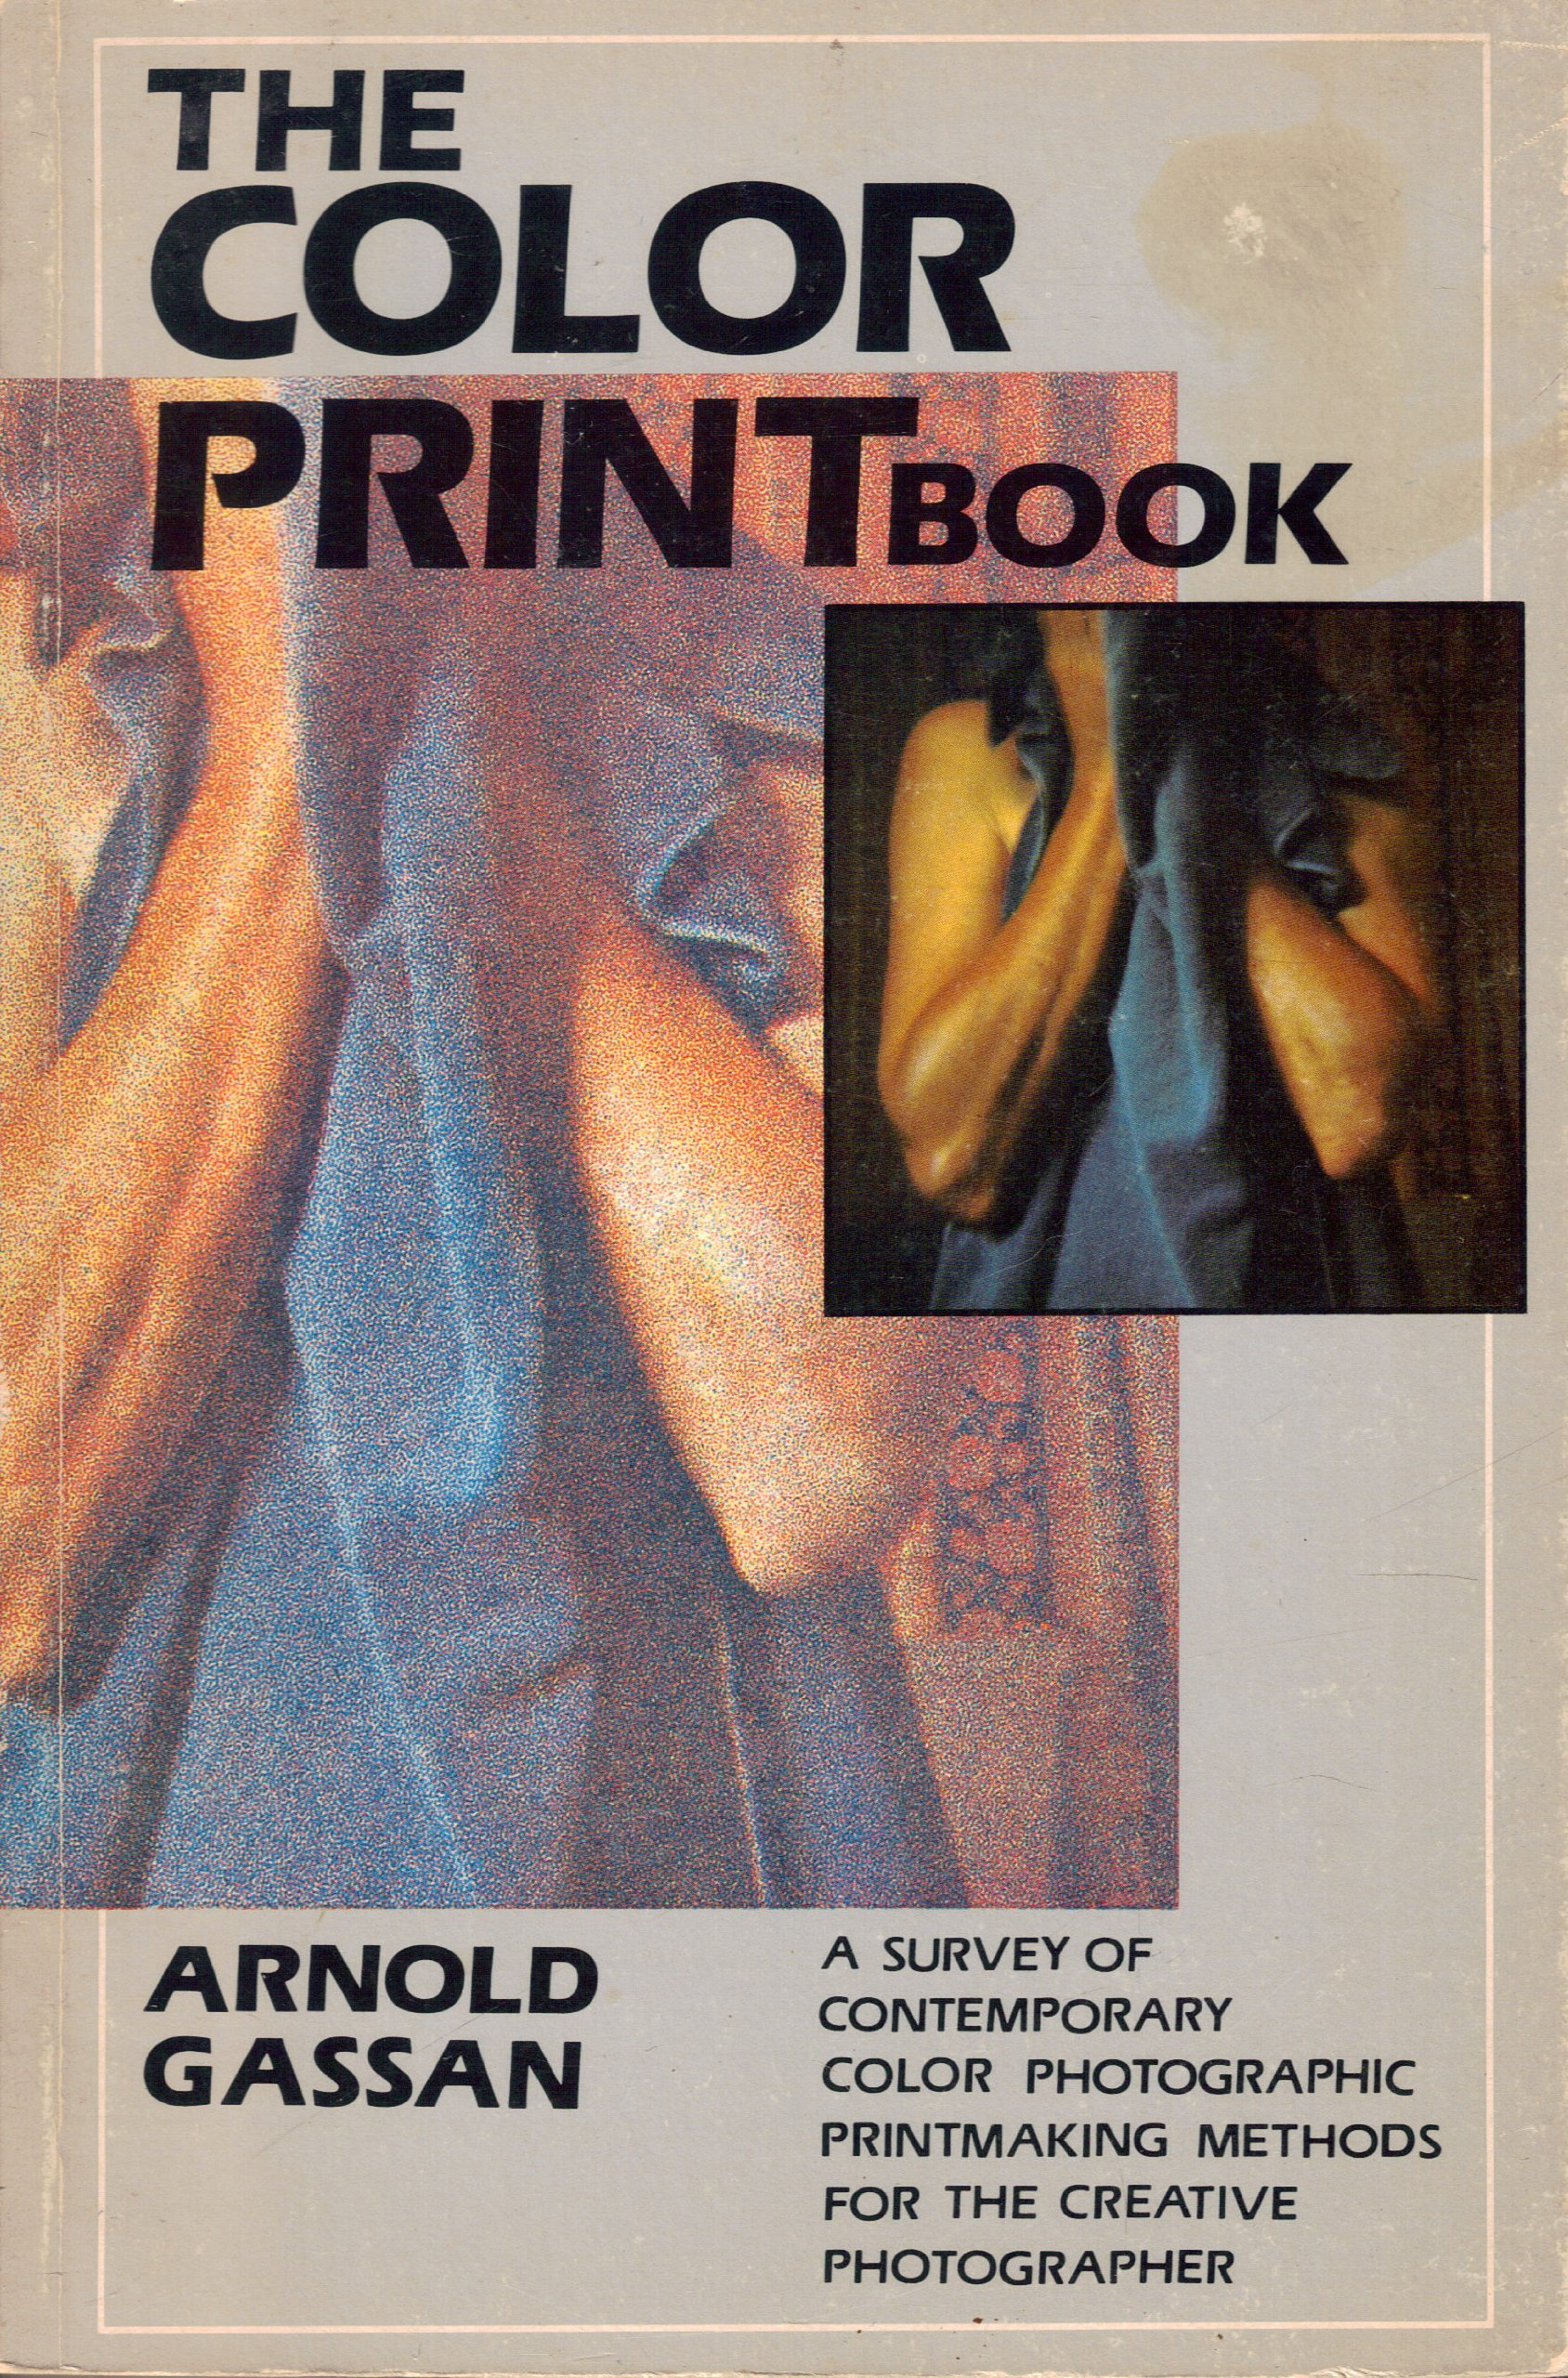 The Color Print Book: A Survey of Contemporary Color Photographic Print Making Methods for the Creative Photographer